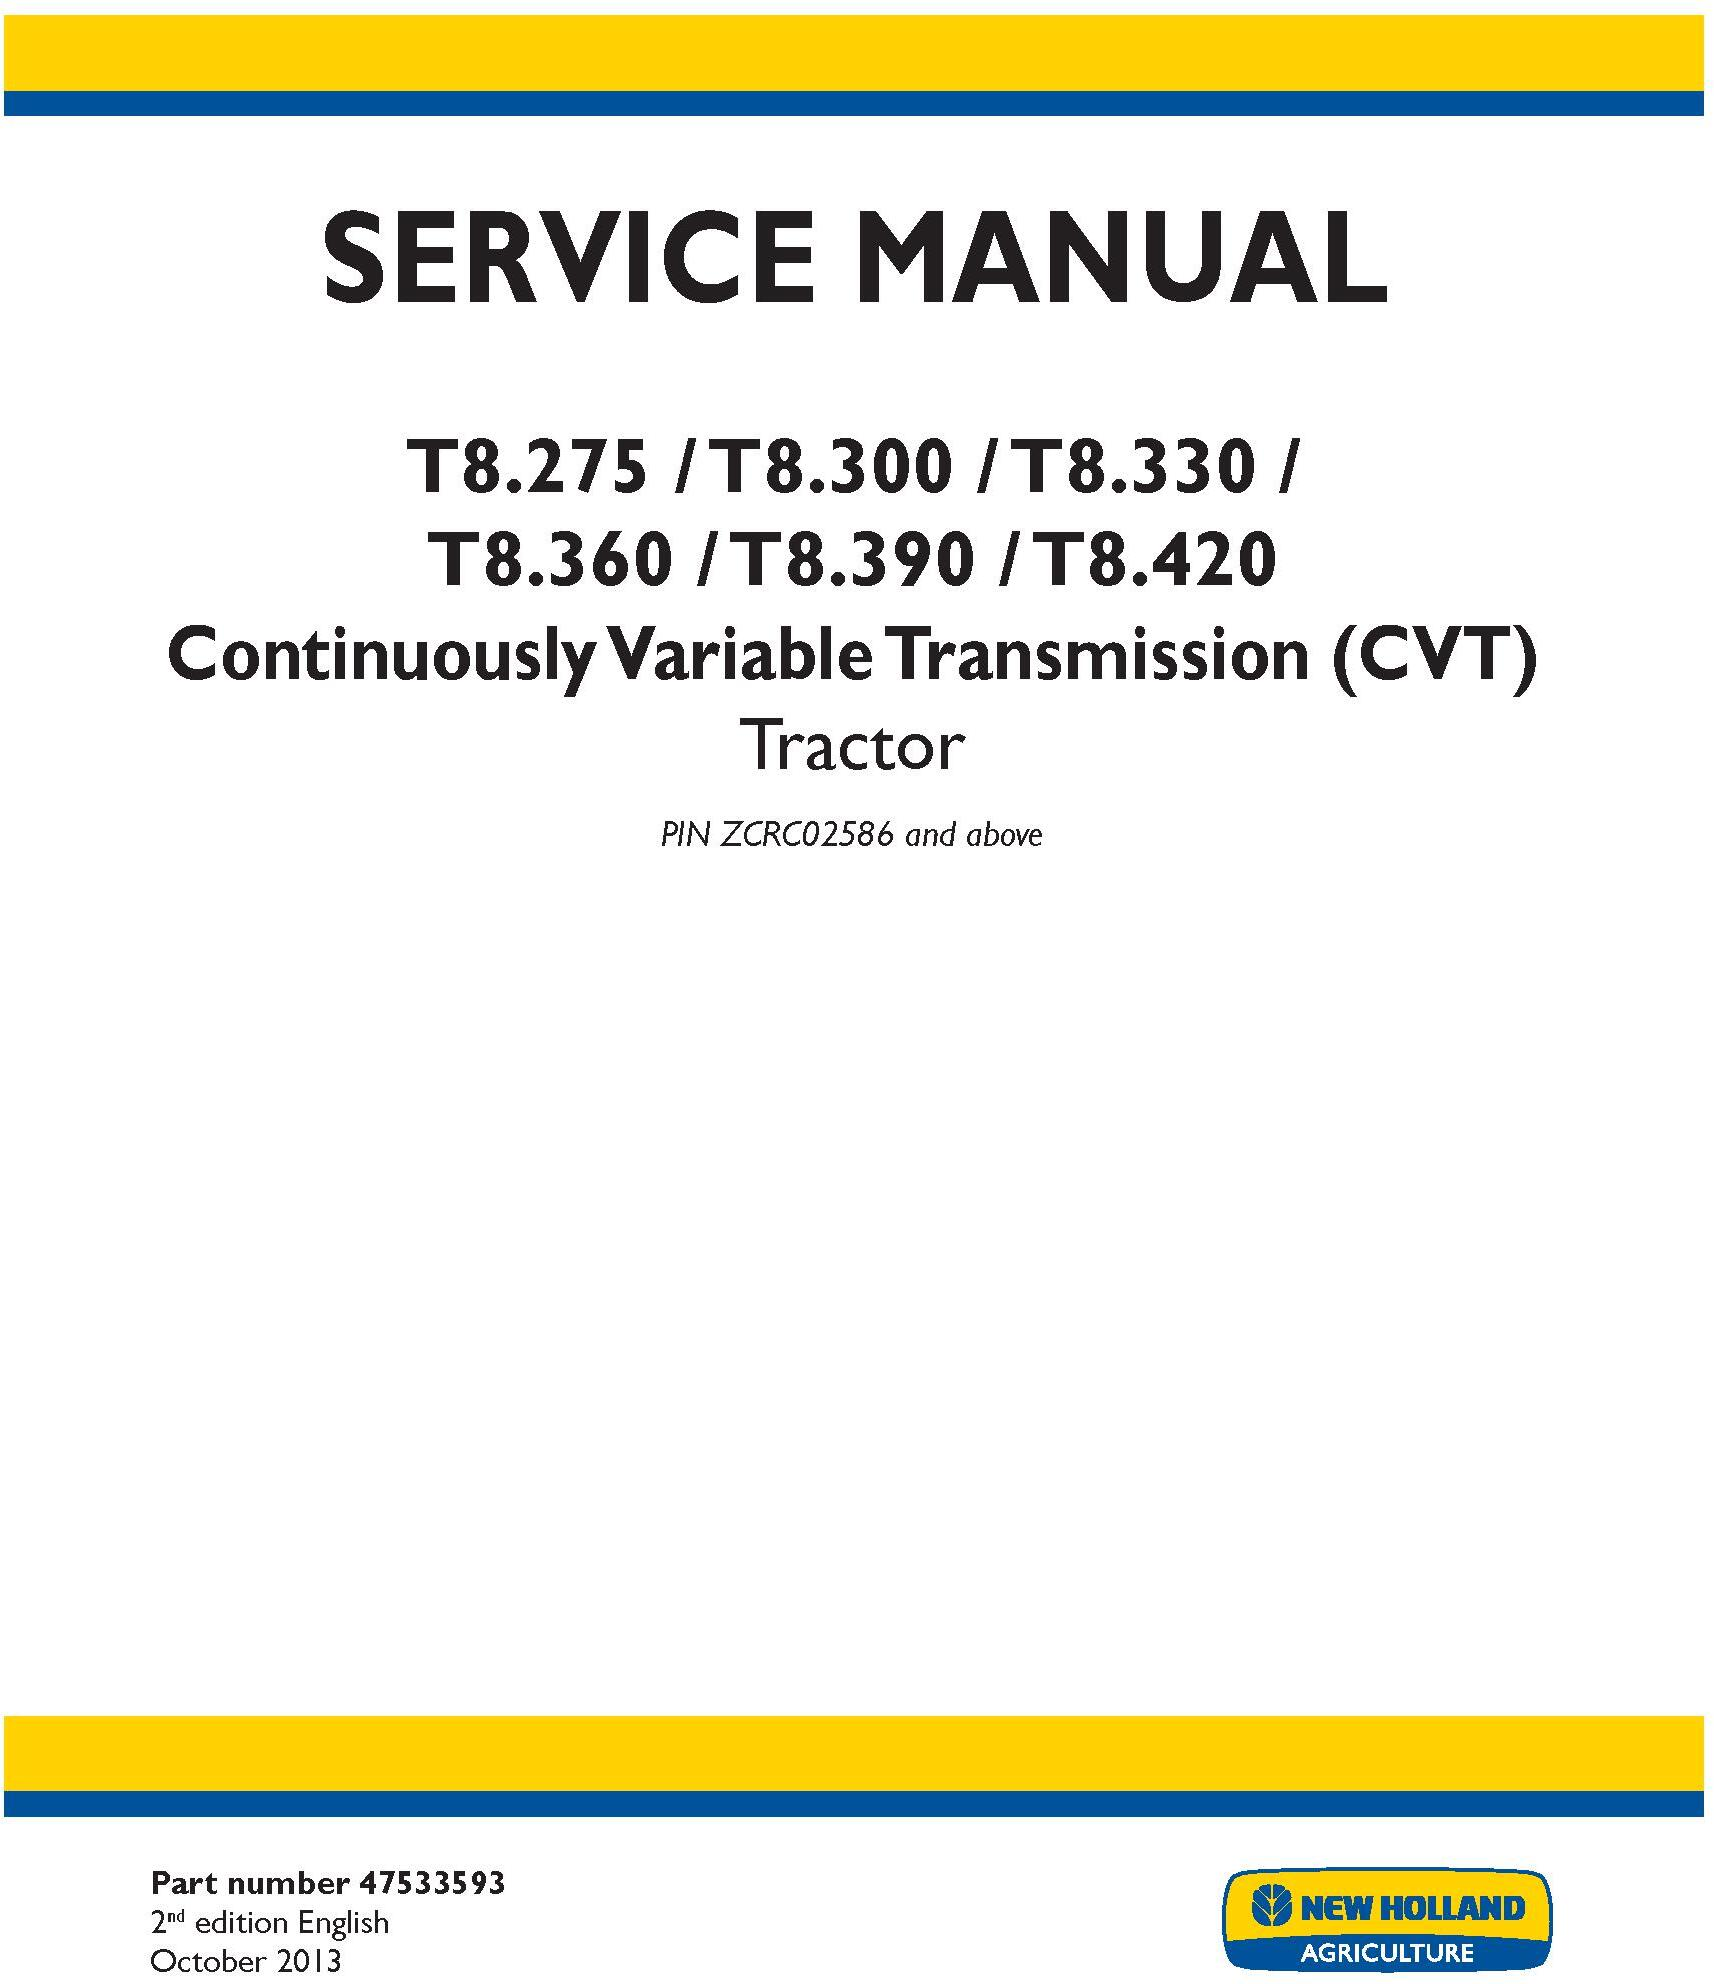 New Holland T8.275, T8.300, T8.330, T8.360, T8.390, T8.420 Tractor w.CVT Transmission Service Manual - 19388